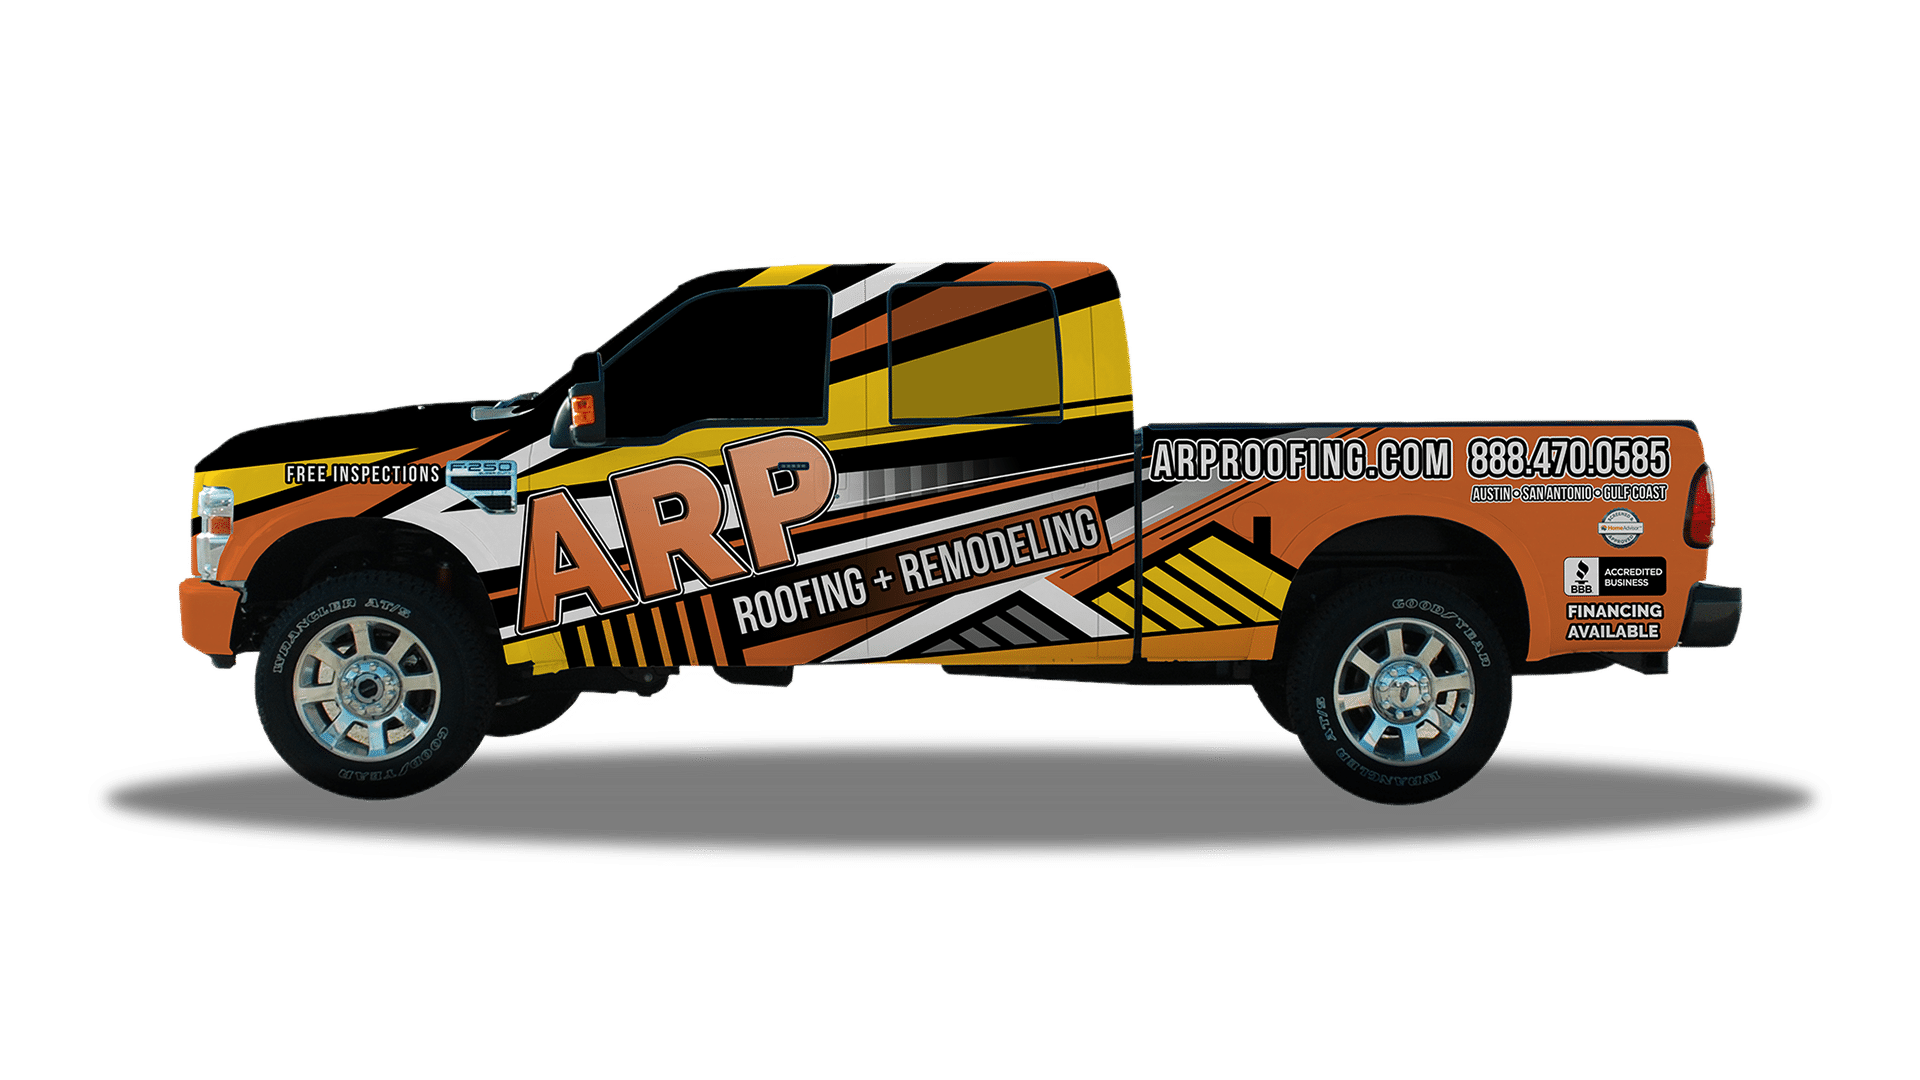 San Marcos Roofing Company - Our Truck